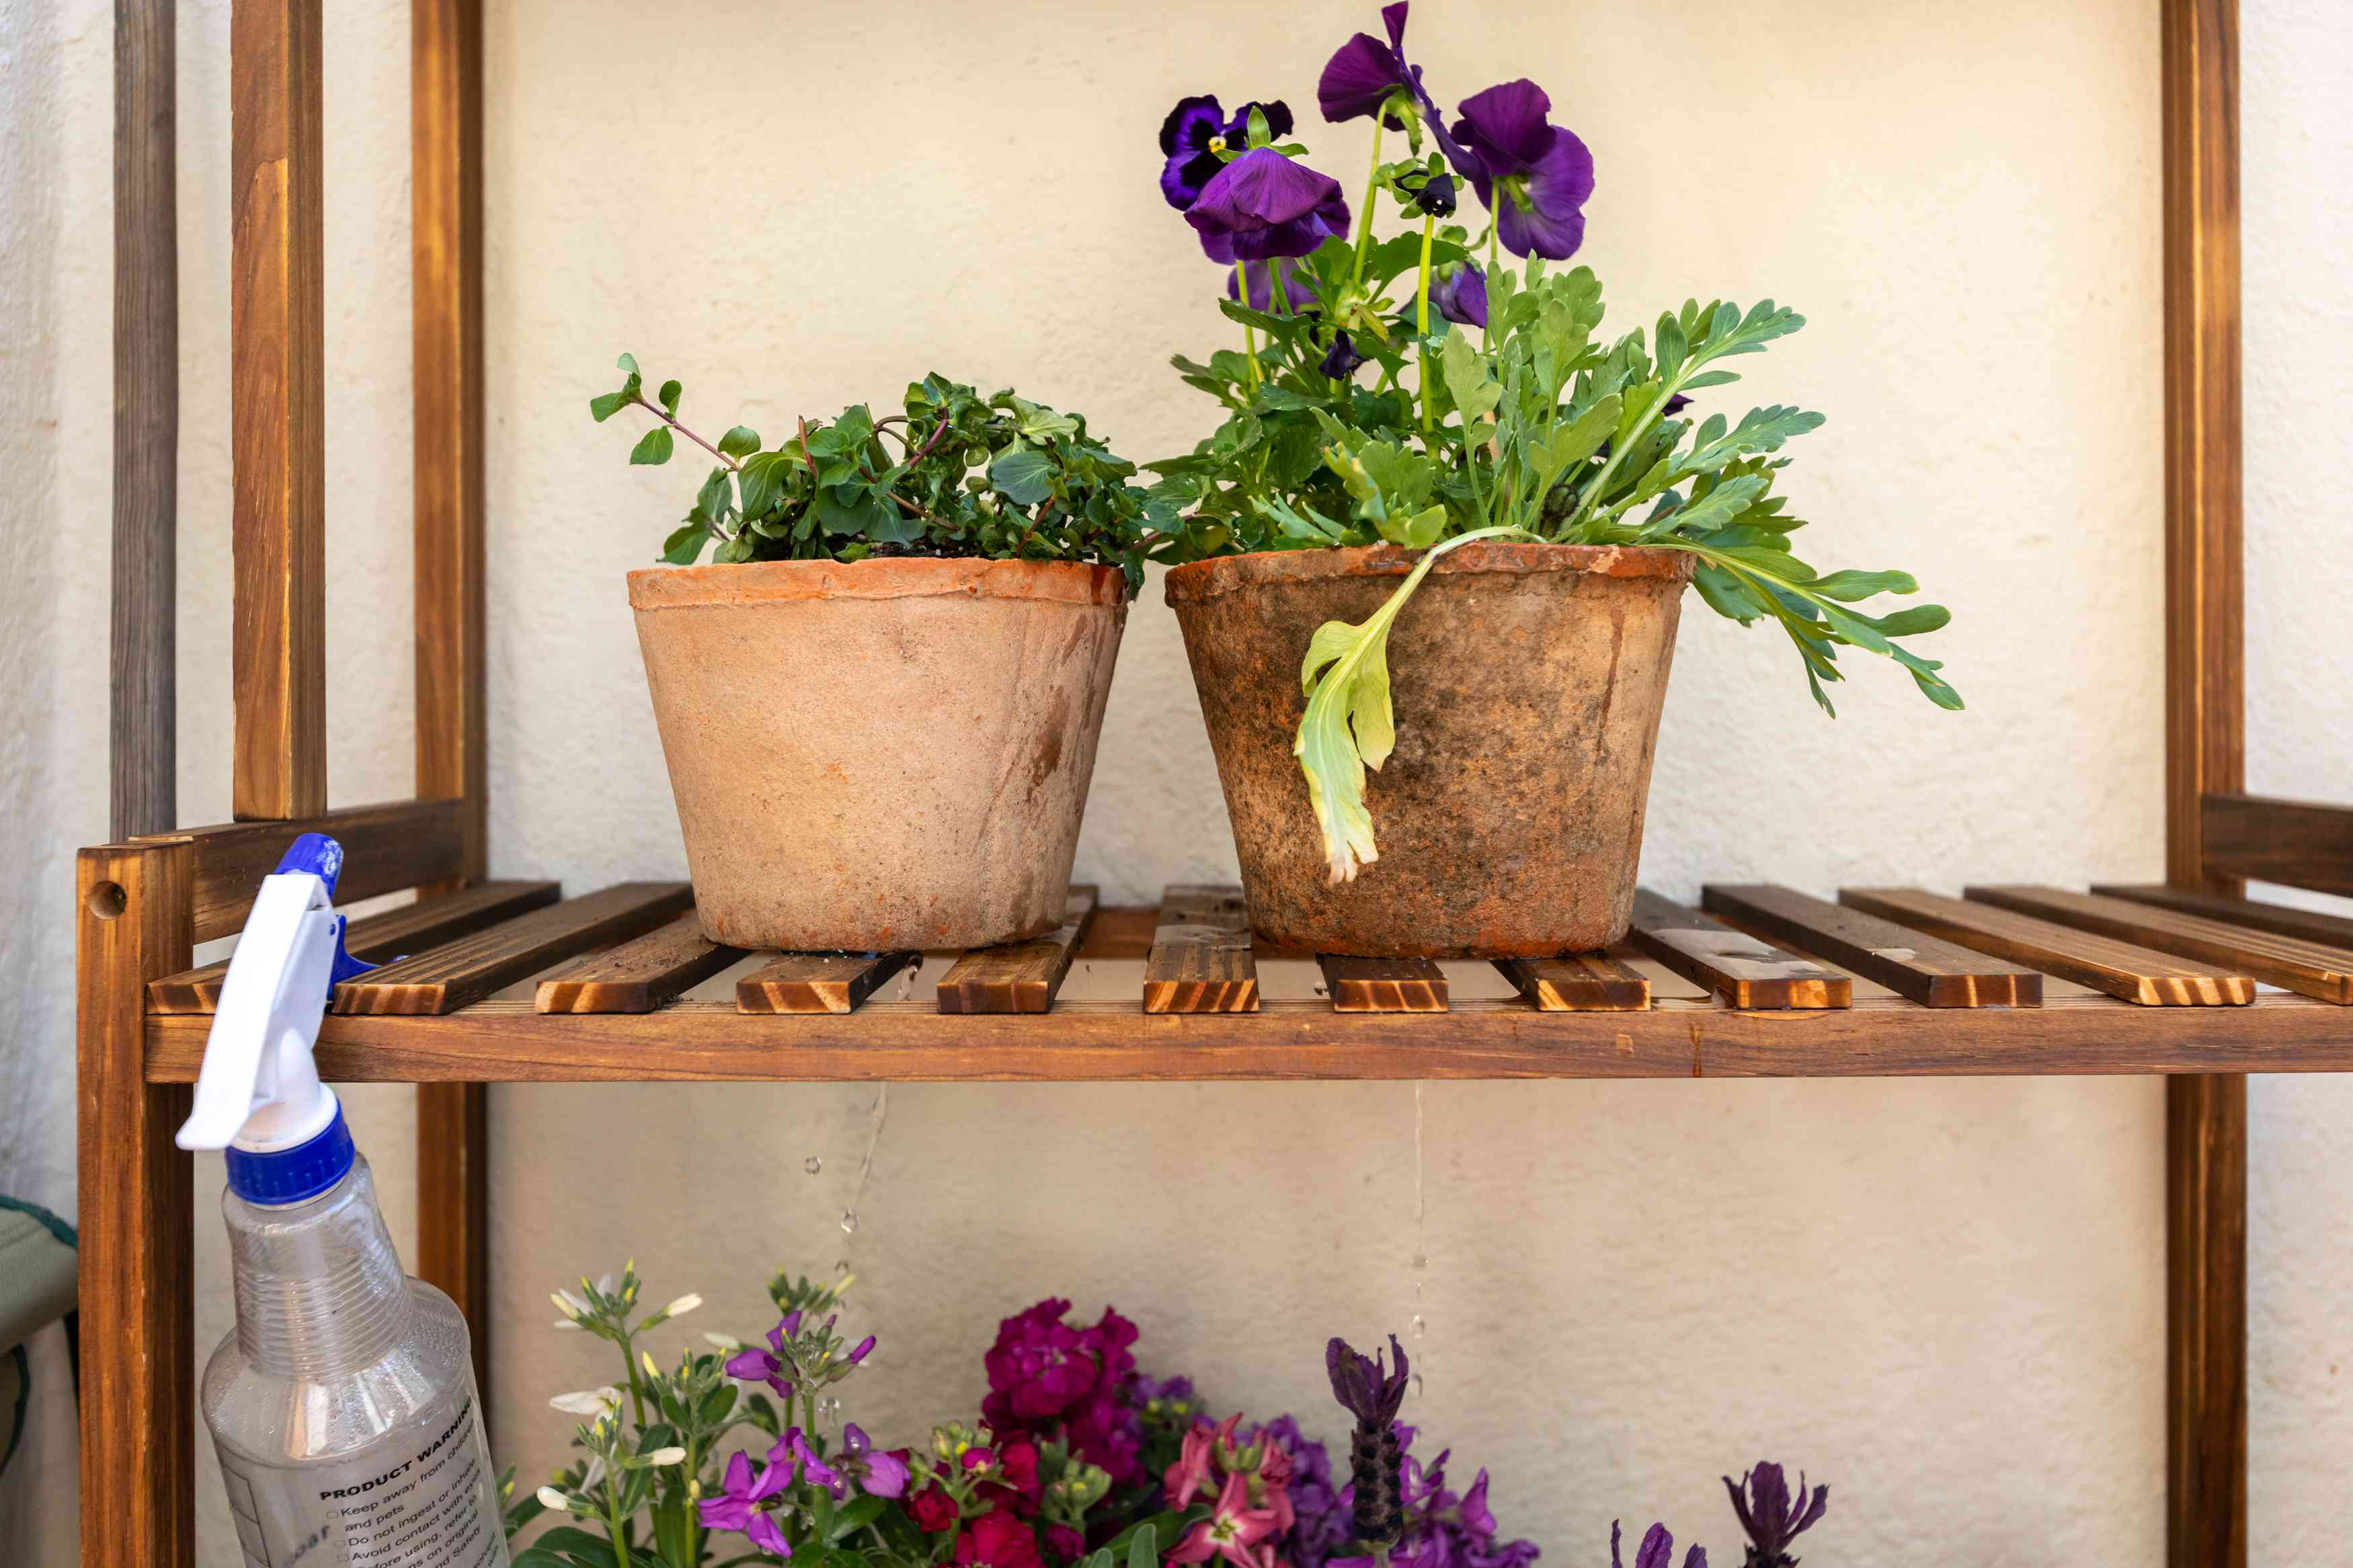 Plants in clay pots sitting on wooden plant stand with water bottle hanging in front